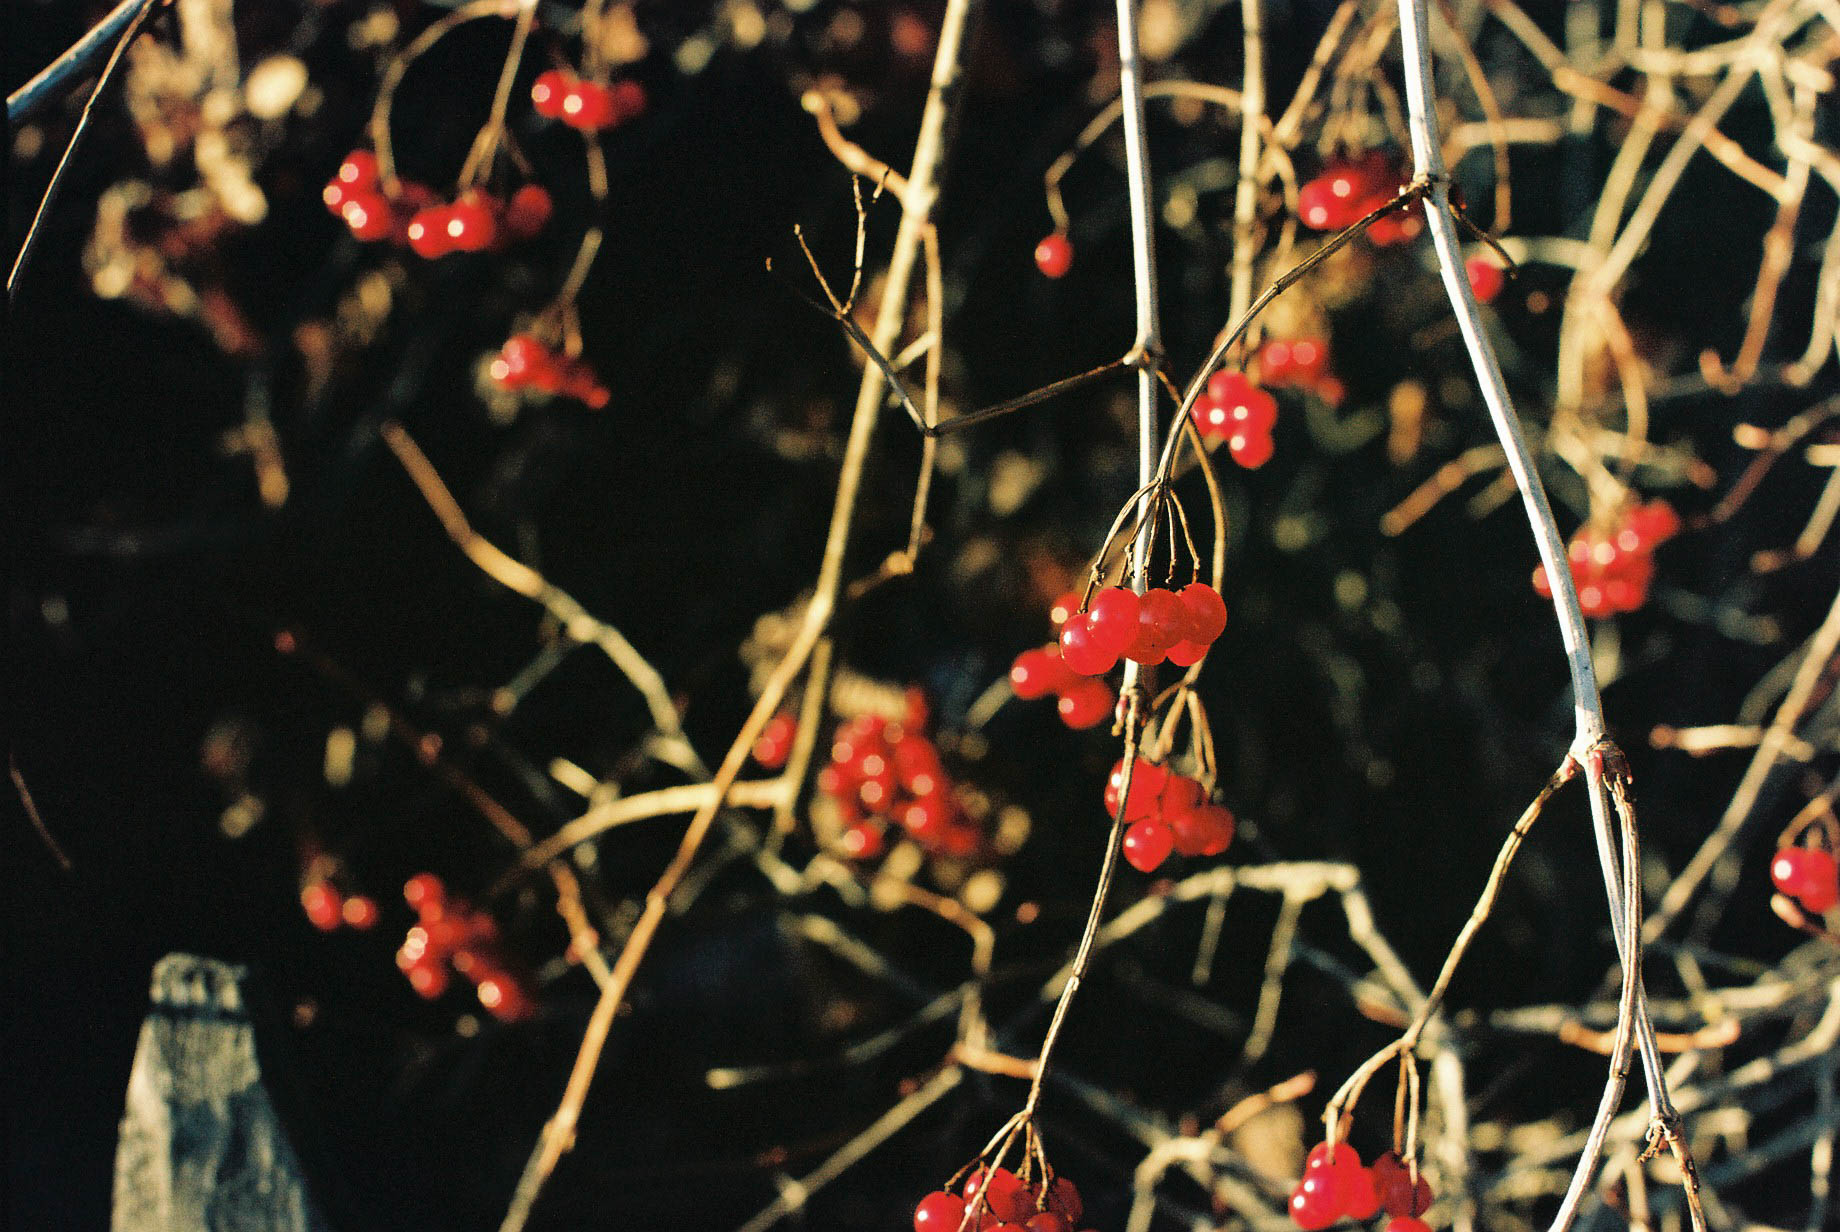 Berries Italian Winter Travels Lifestyle Travel Photographer